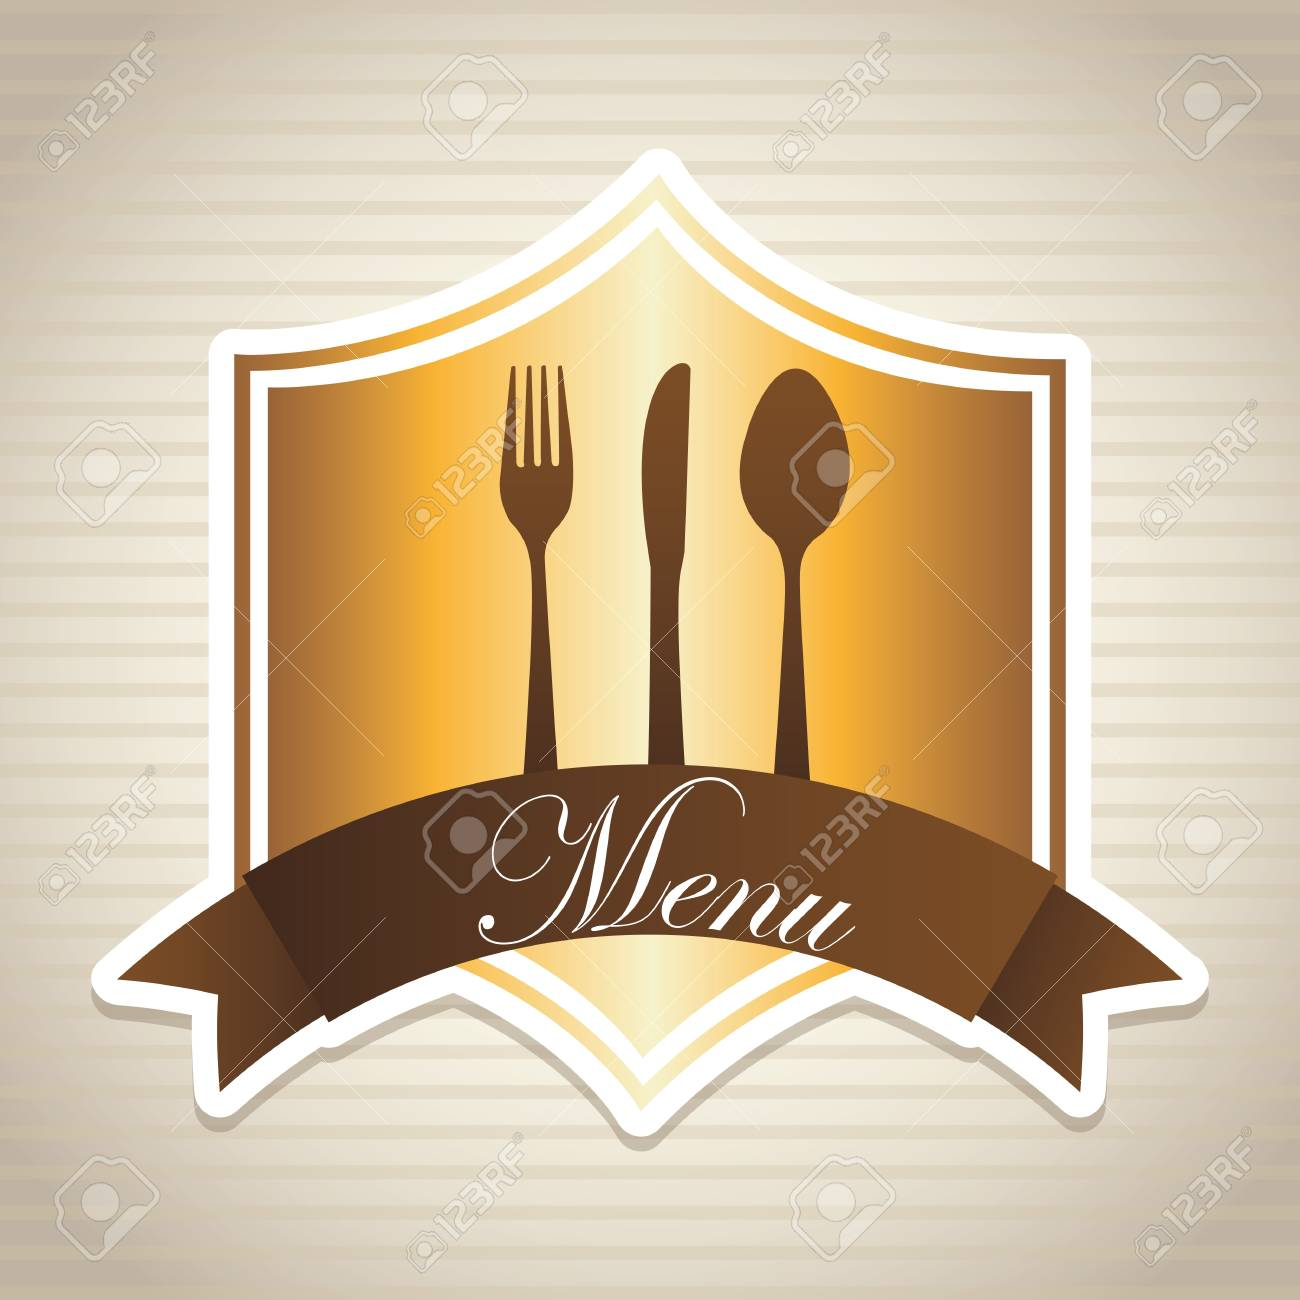 menu design over lineal background Stock Vector - 20756748